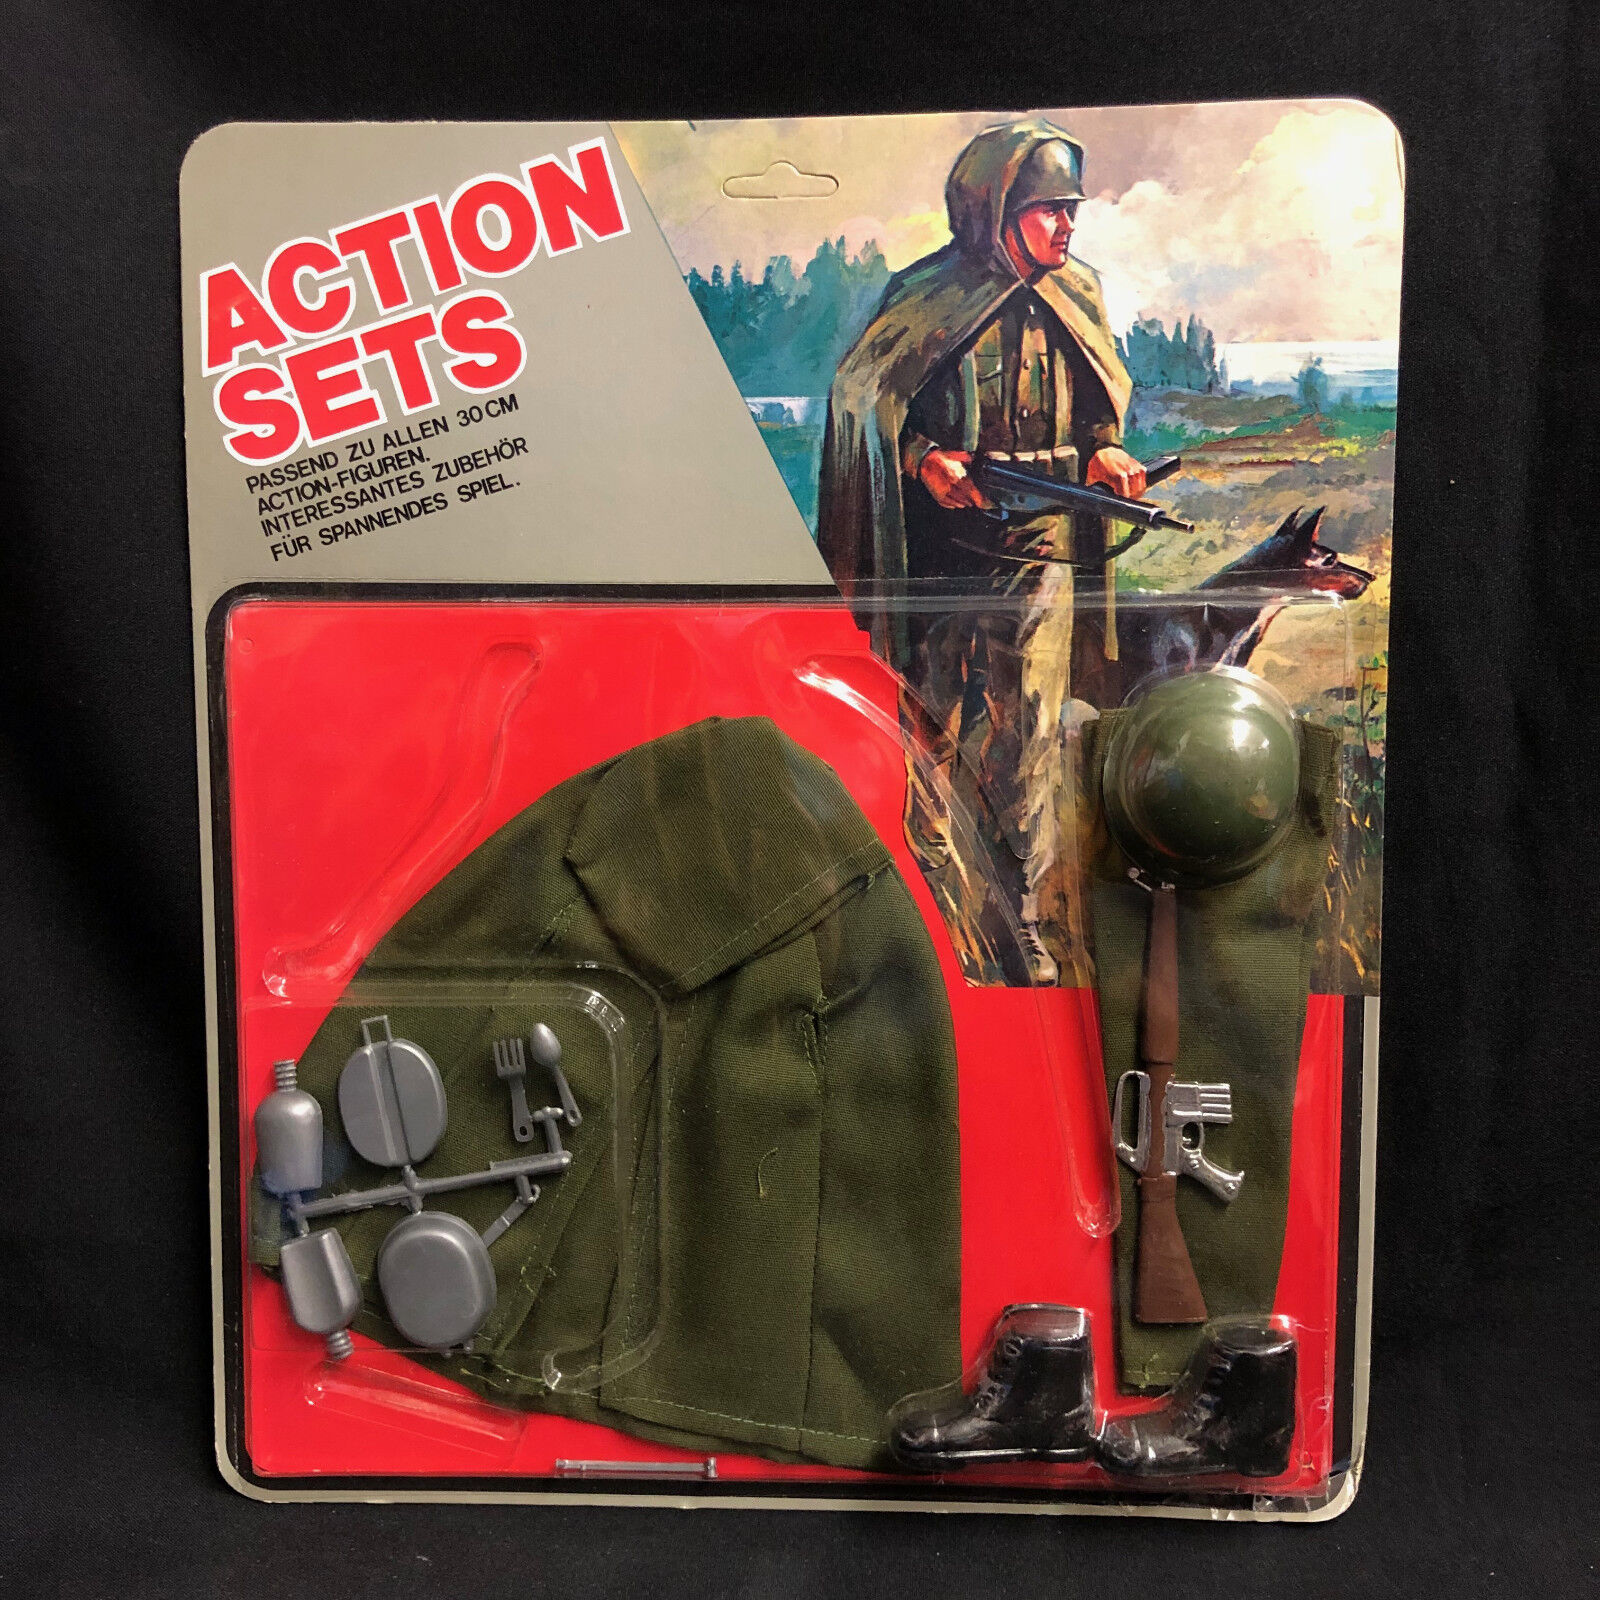 Action MAN-GI JOE-Action Set-Impermeabile Mantello uniforme-cardate